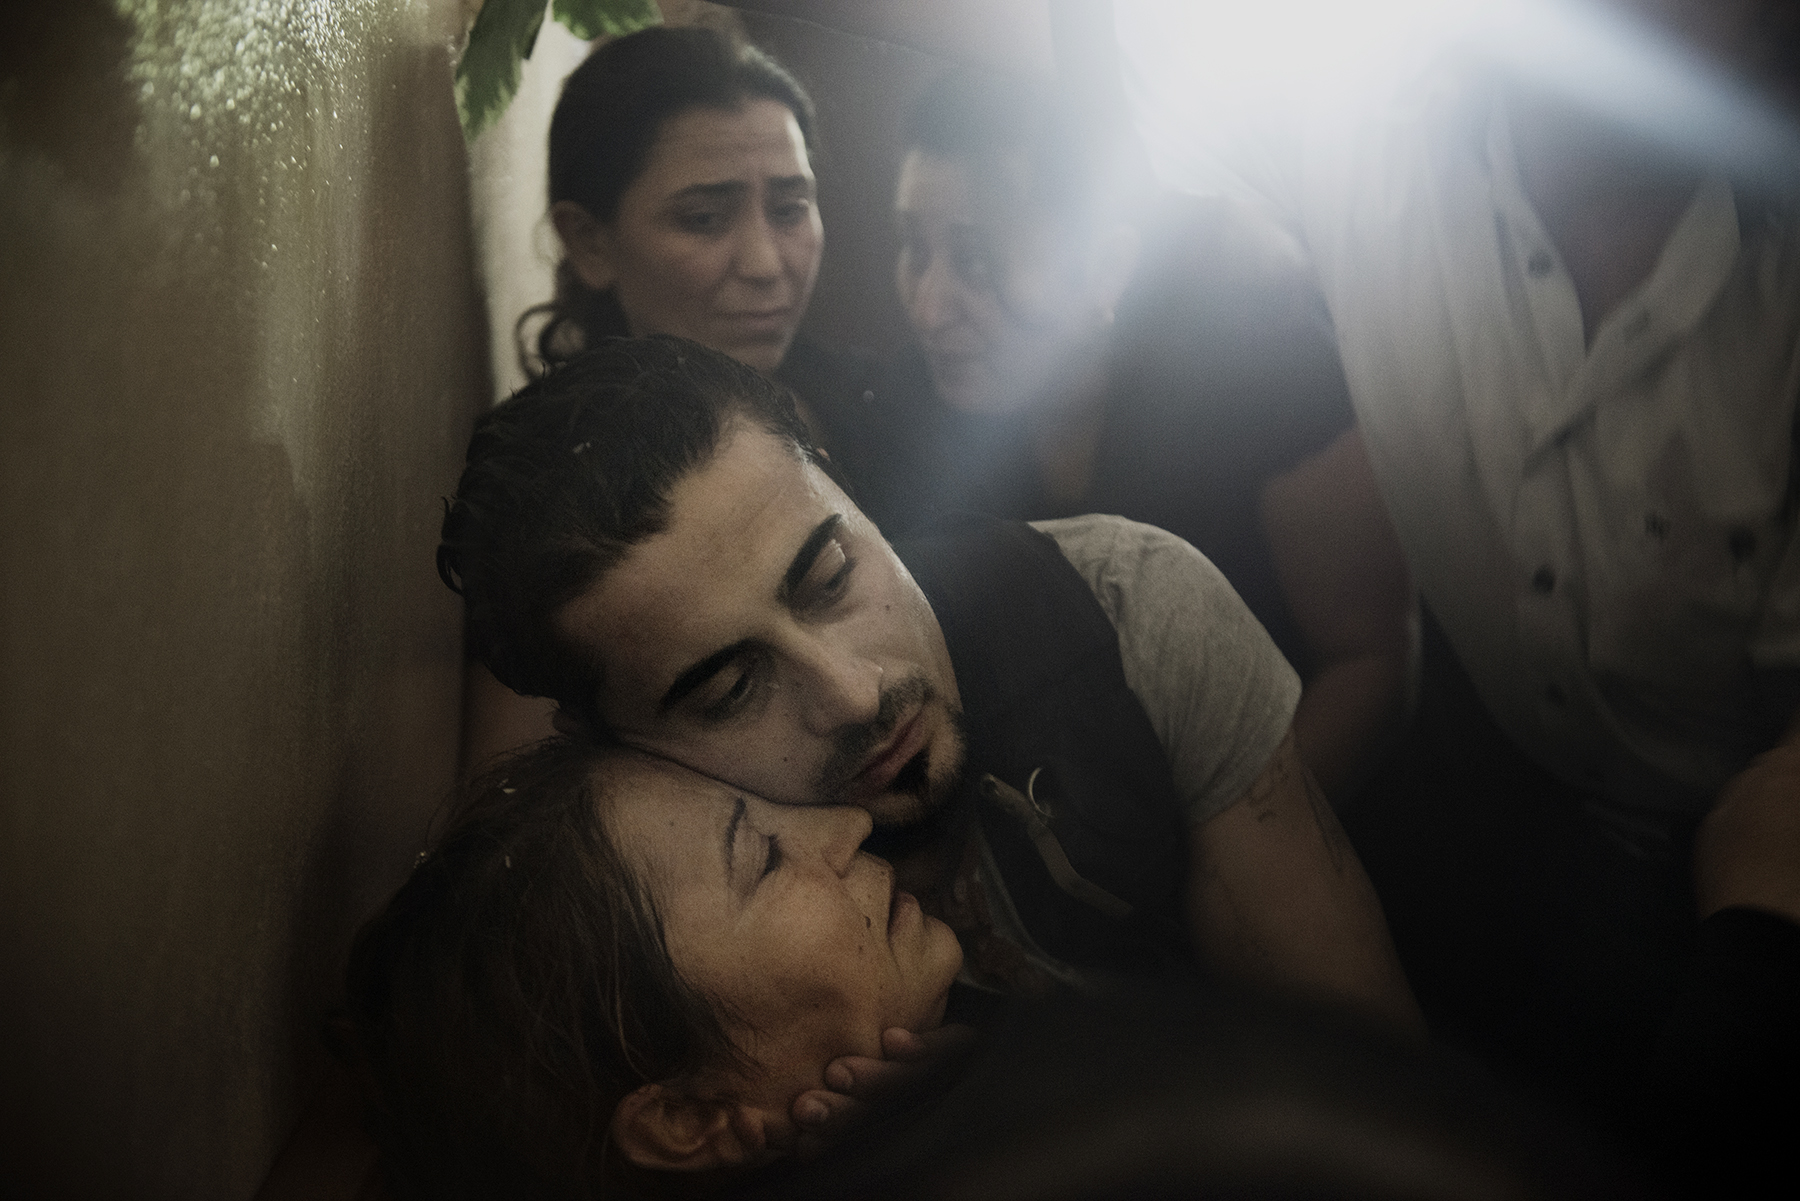 Syria, Latakia, September 2013, Bassel Barhoum hugs his mother Jamila Marshid during his brother's funeral in the village of Daqaqa in Latakia Province, Syria. Abu Layth died while fighting for the Syrian Army.